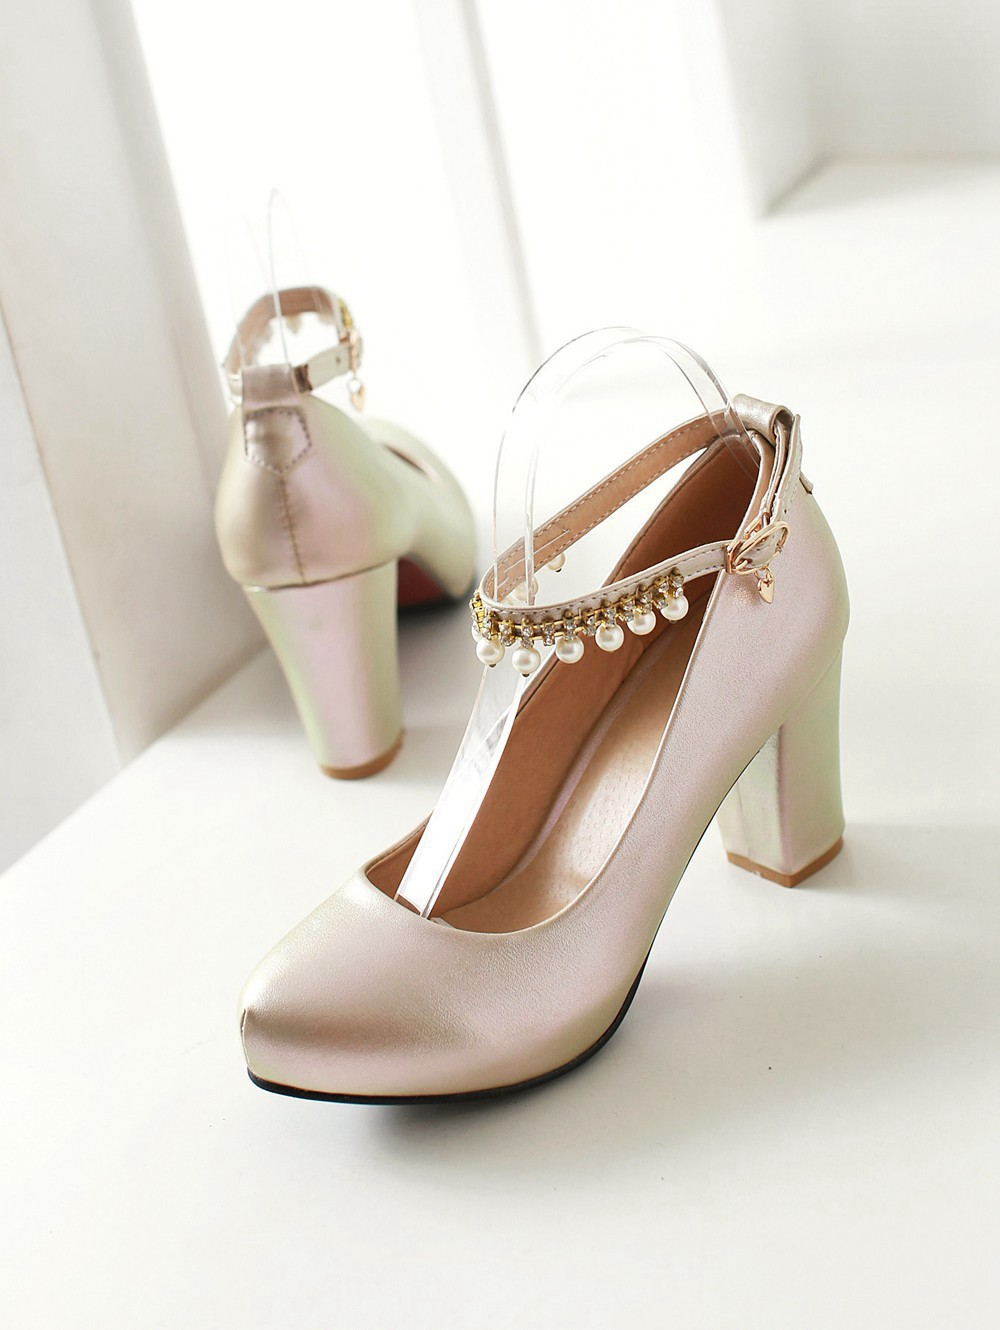 2017 Chunky High Heeled Pink Bridal Wedding Shoes Beaded White Female Buckle Elegant Pumps Silver Gold43